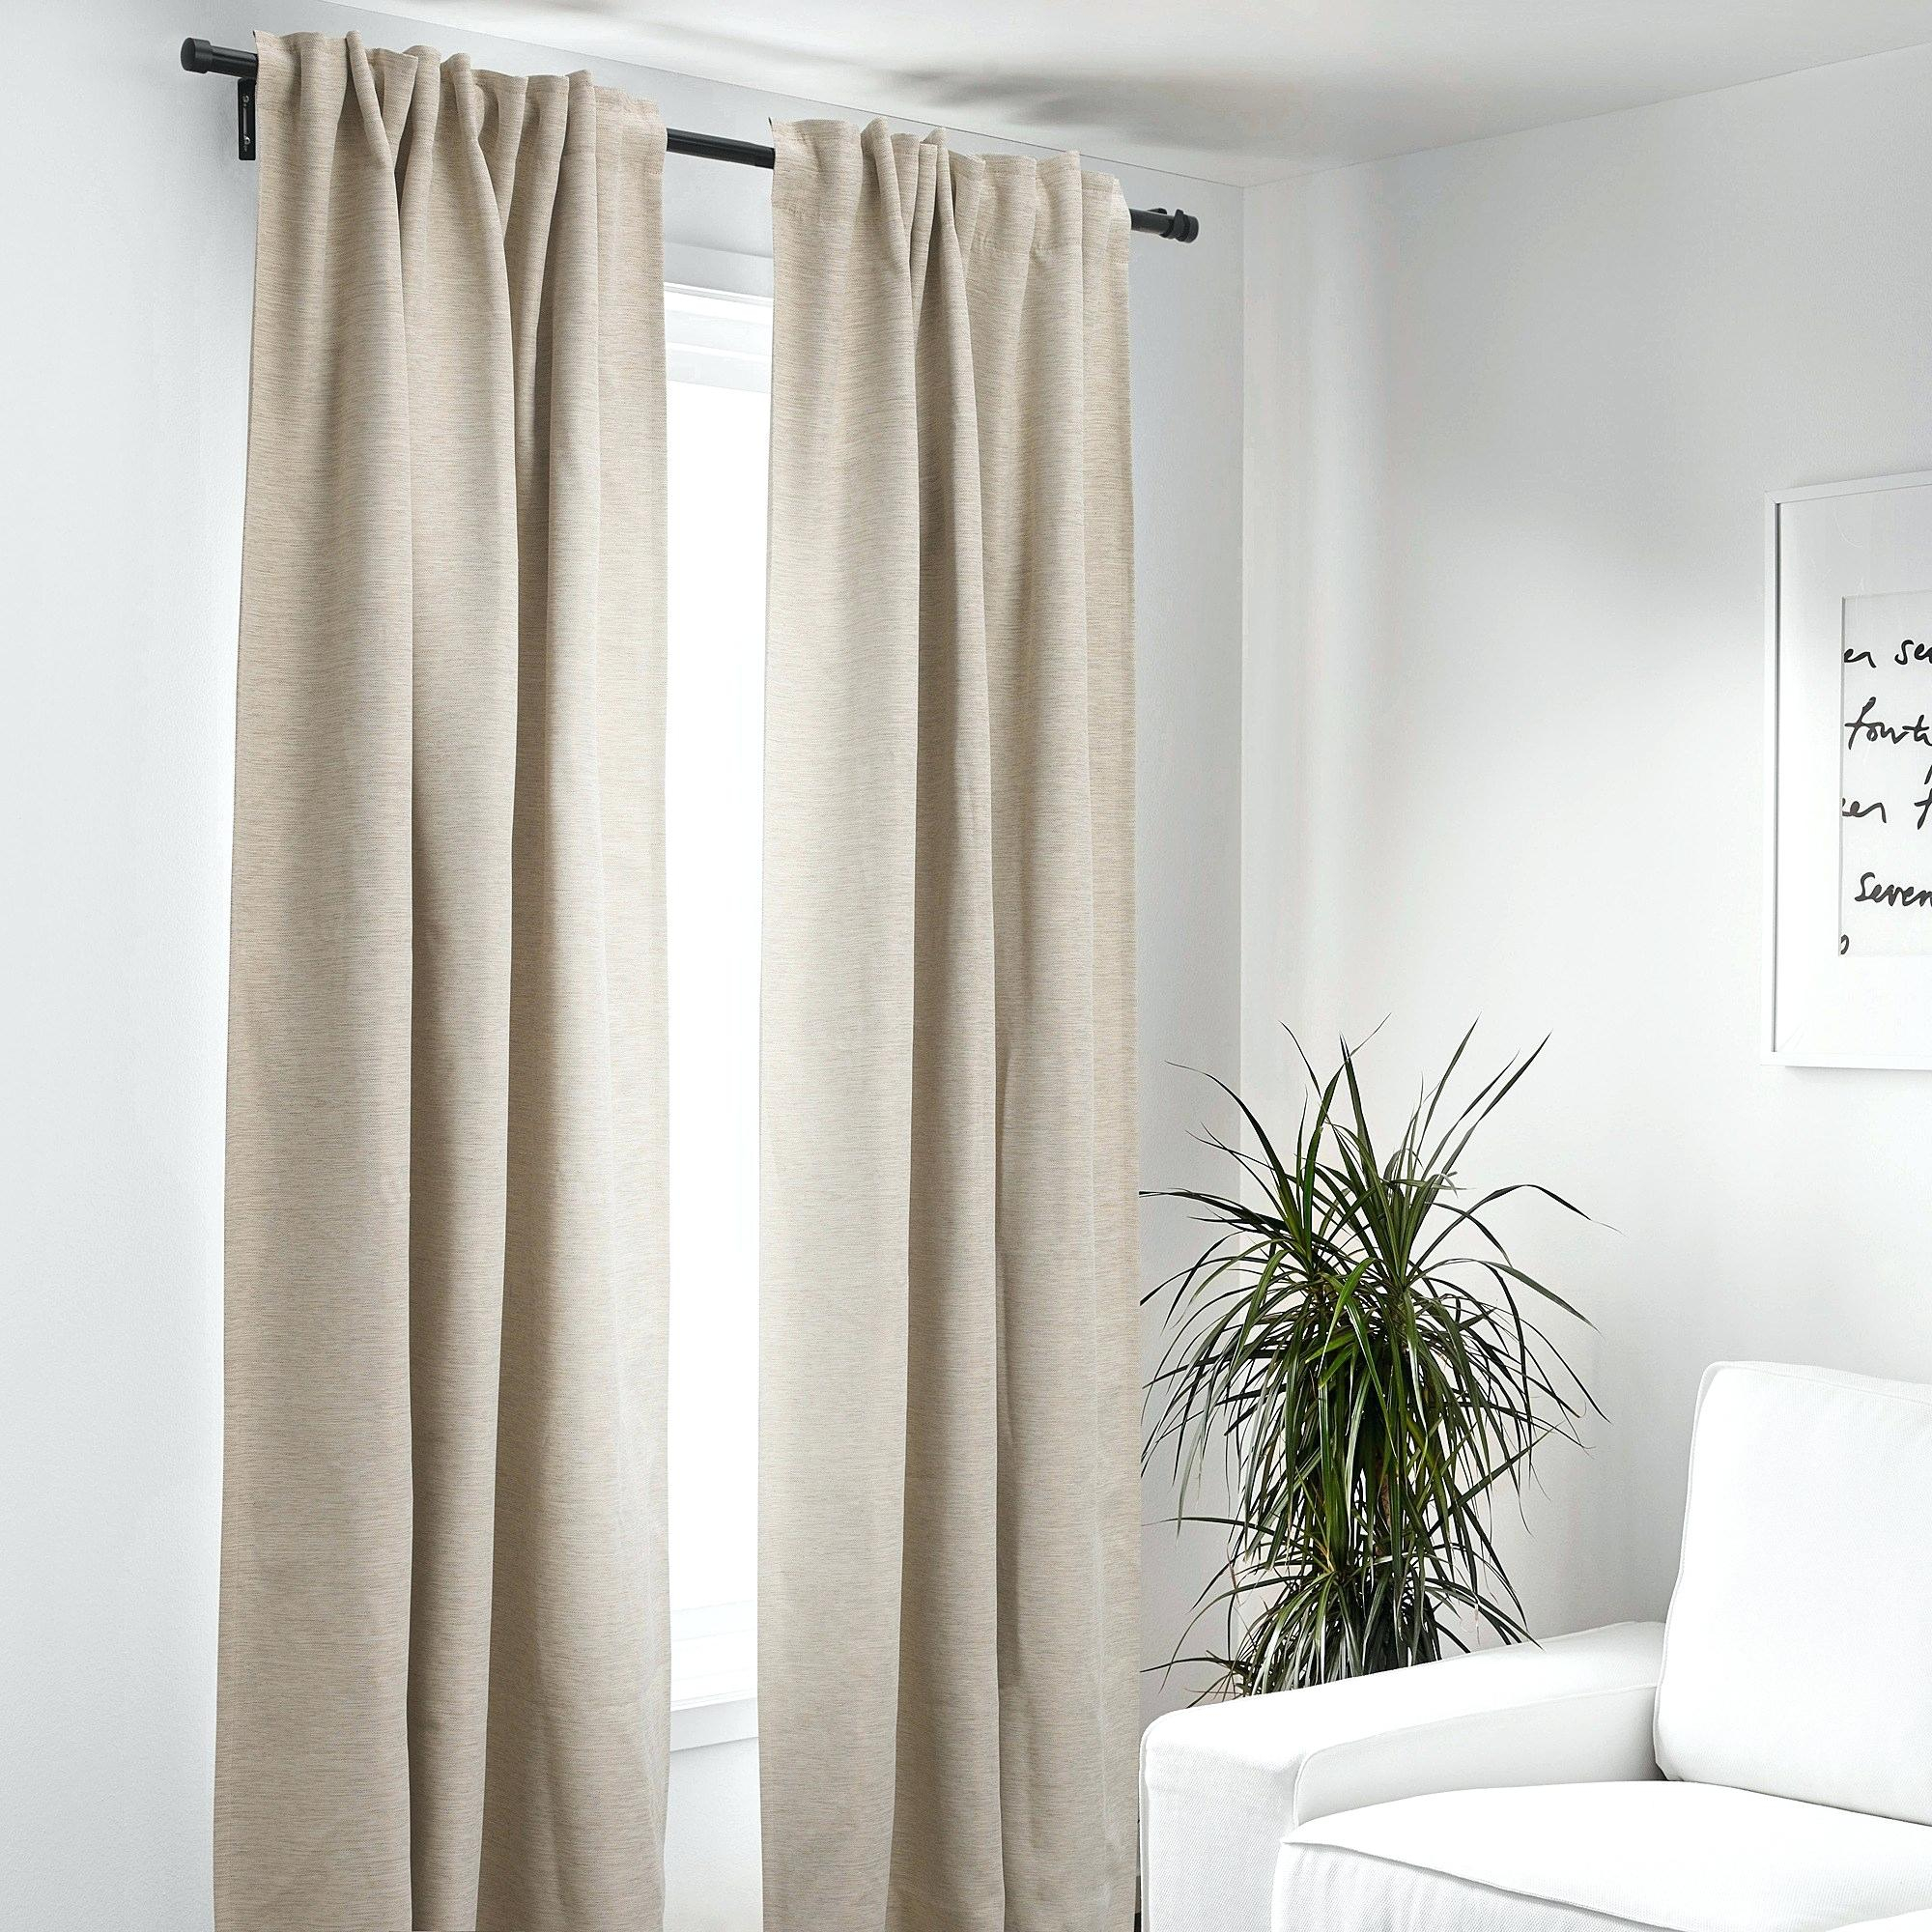 Blackout Drapes Ikea – Delipay (View 1 of 30)